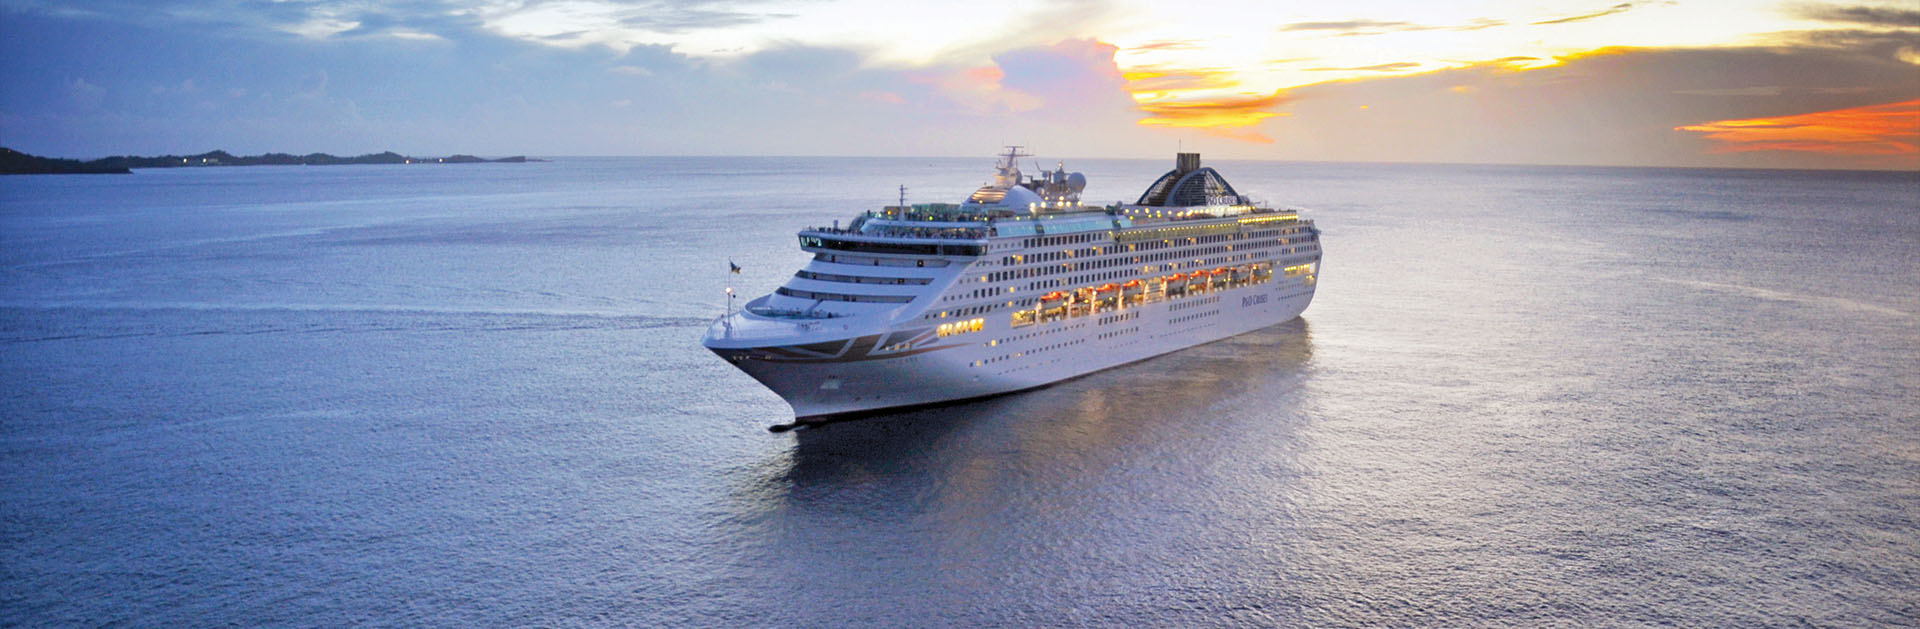 P&O's Oceana No-Fly 2019/20 Season | Ocean World Travel